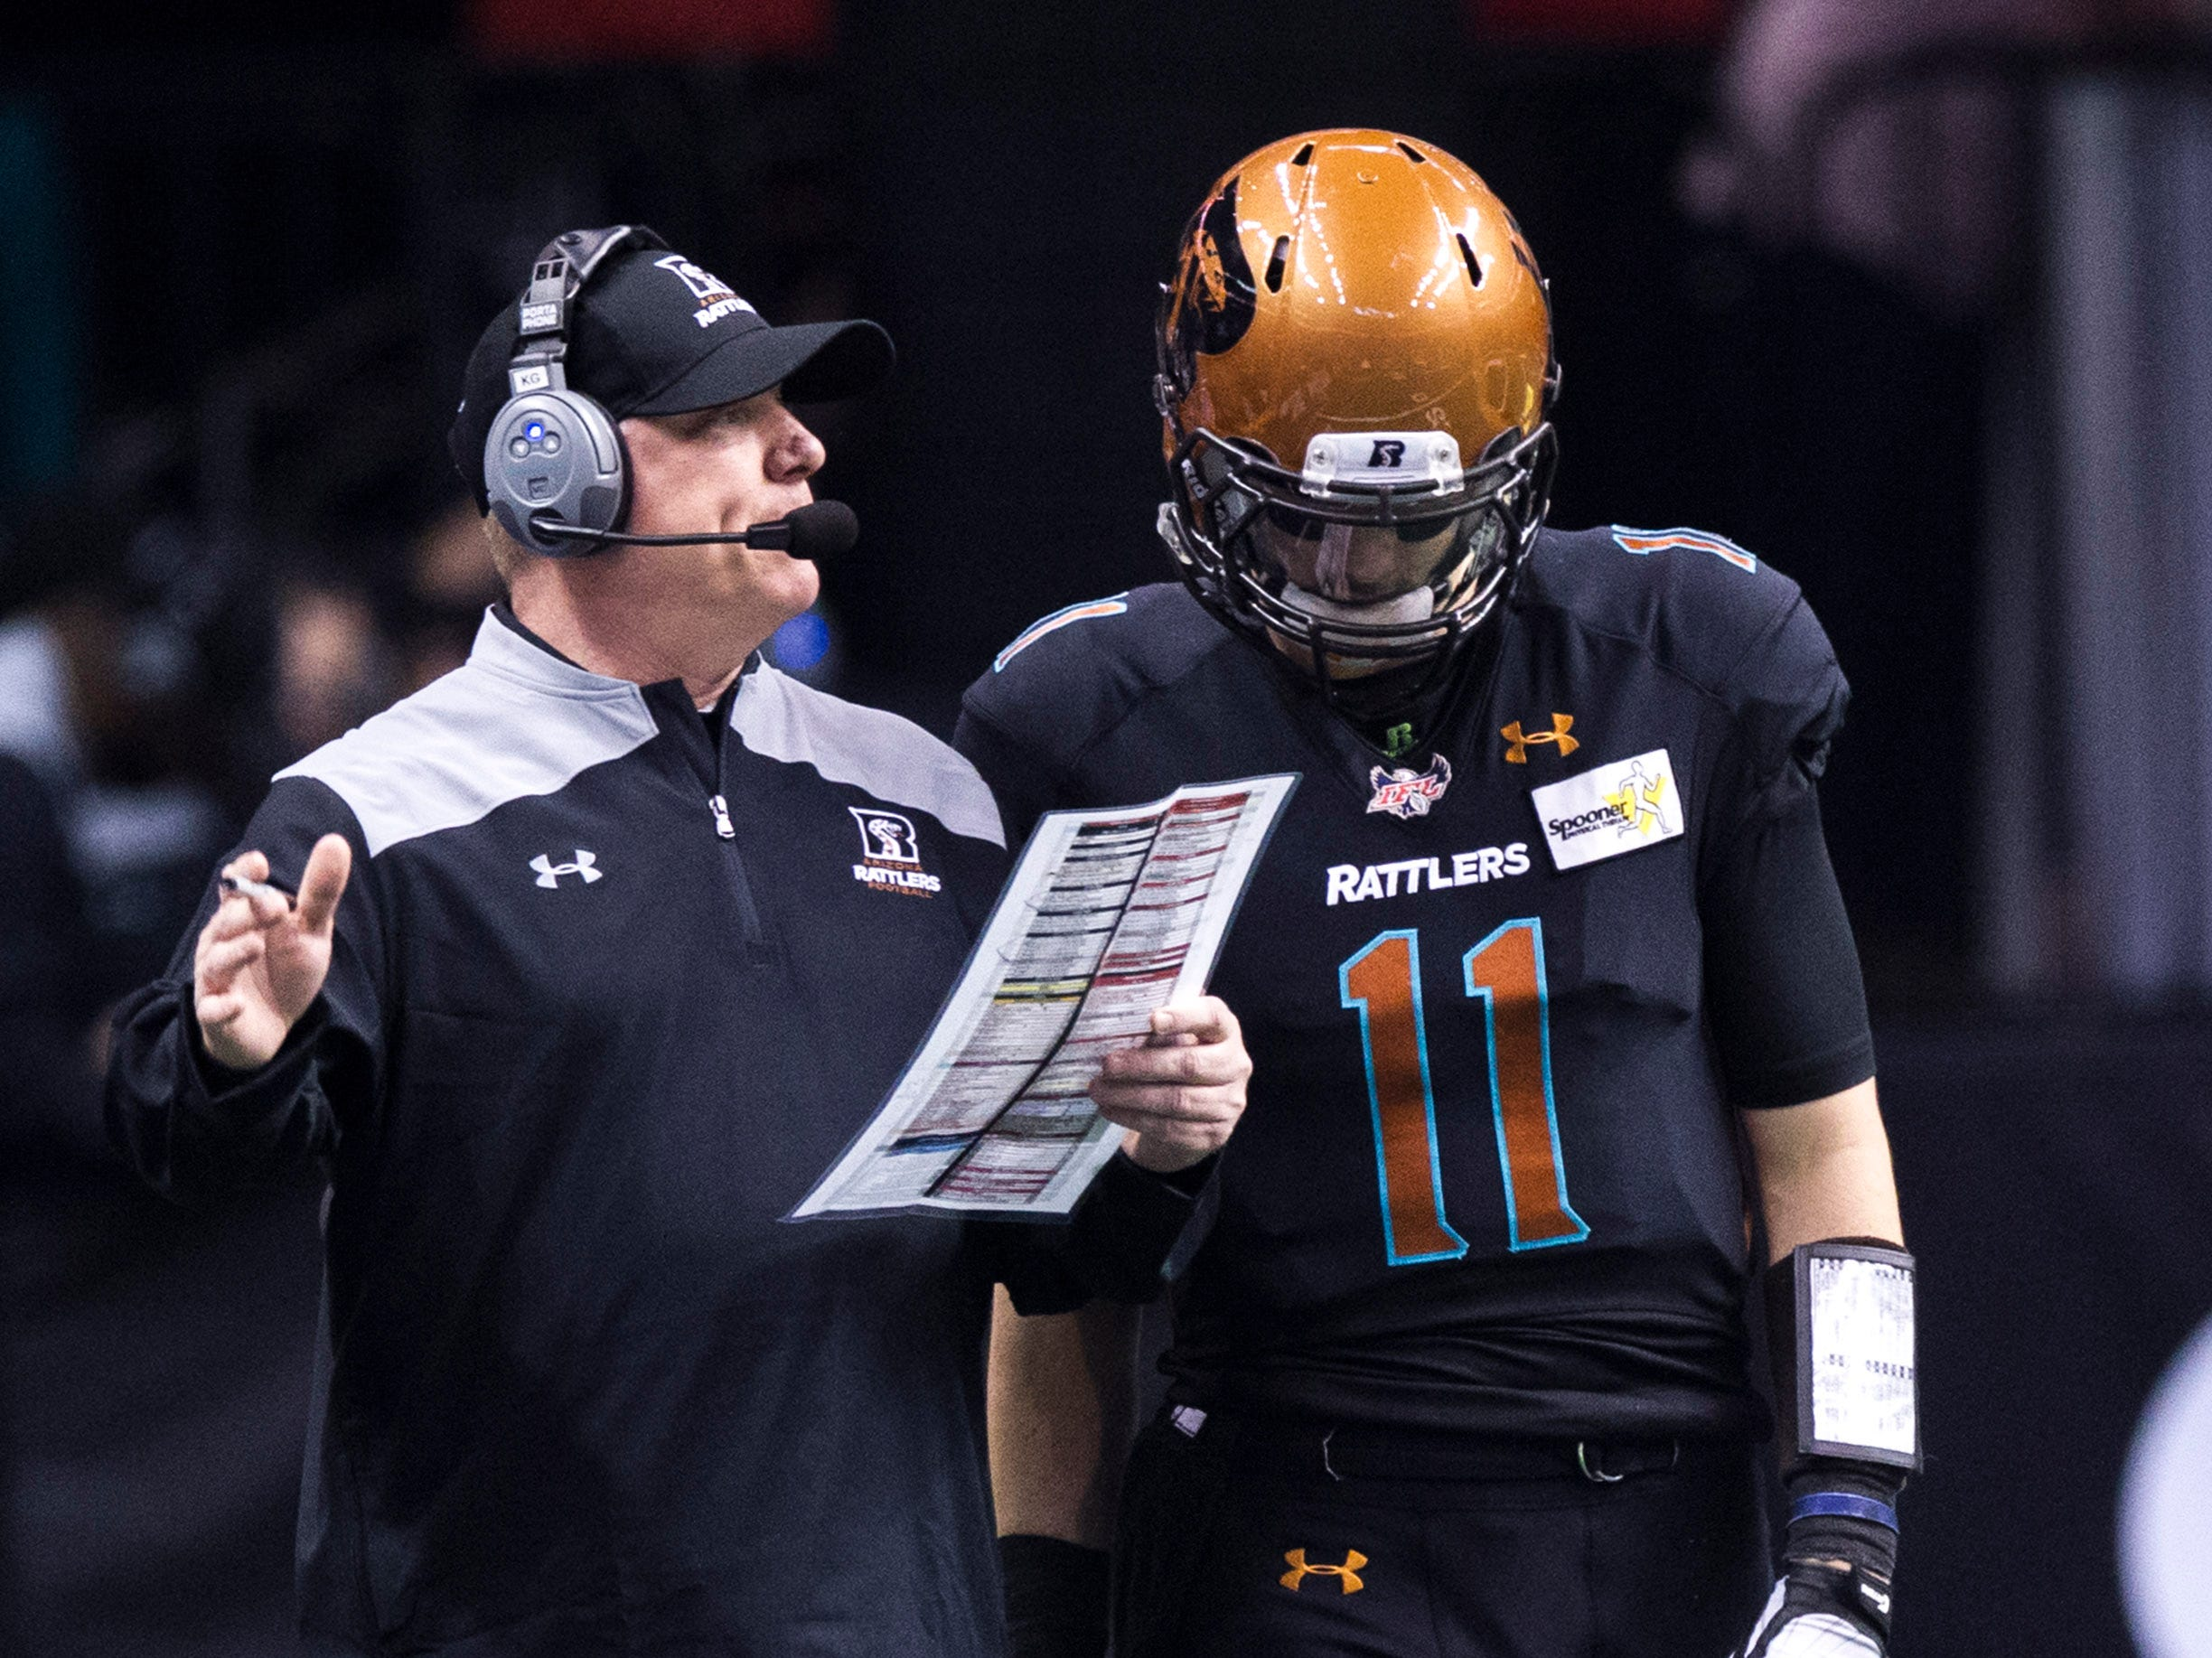 Arizona Rattlers' head coach Kevin Guy talks to his quarterback Jeff Ziembe during the first half of their game against the San Diego Strike Force at Talking Stick Resort Arena in Phoenix Friday, April. 6, 2019.